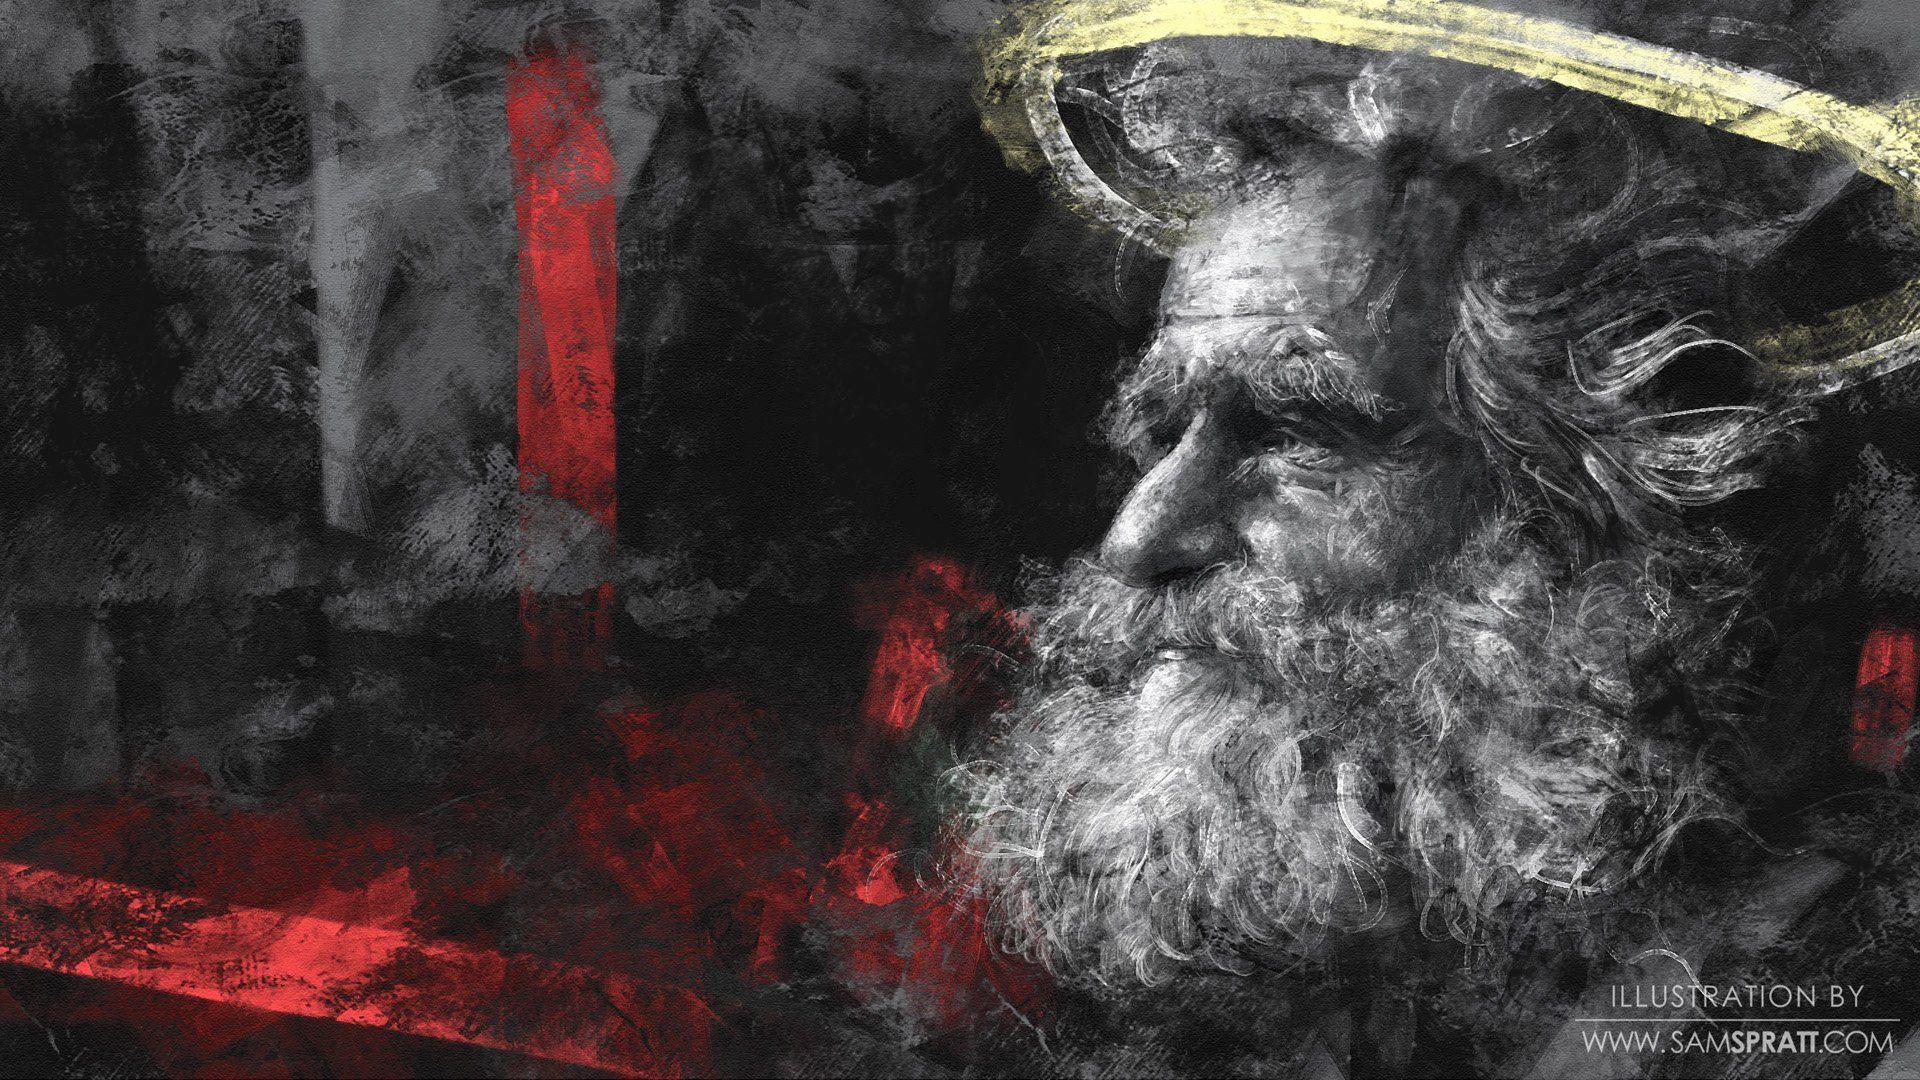 Moses Wallpapers